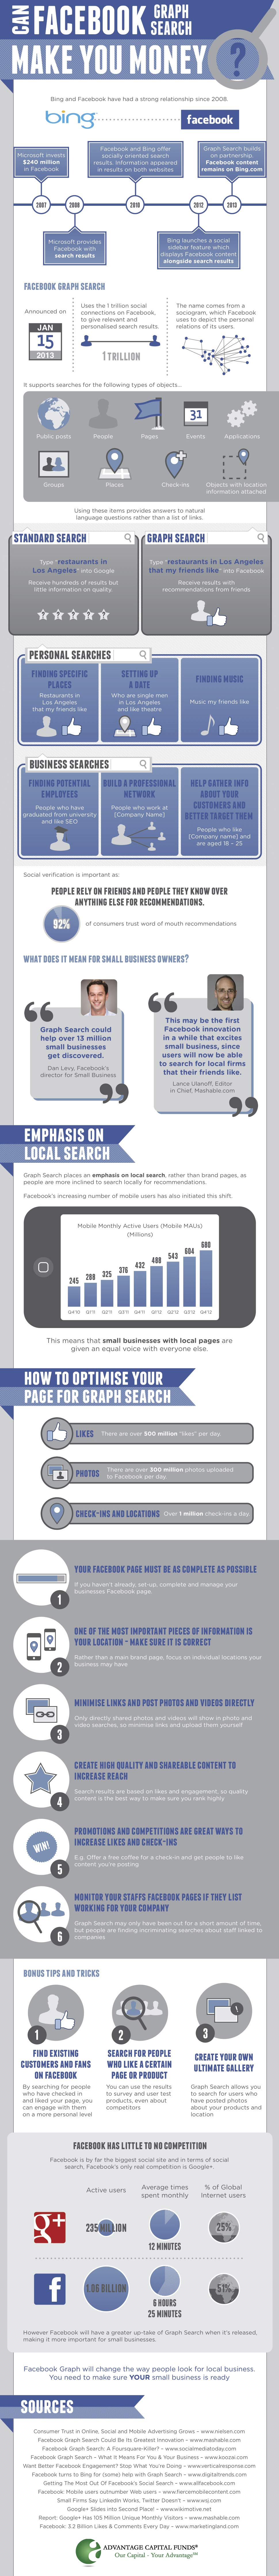 Facebook Graph Search Benefits-Infographic